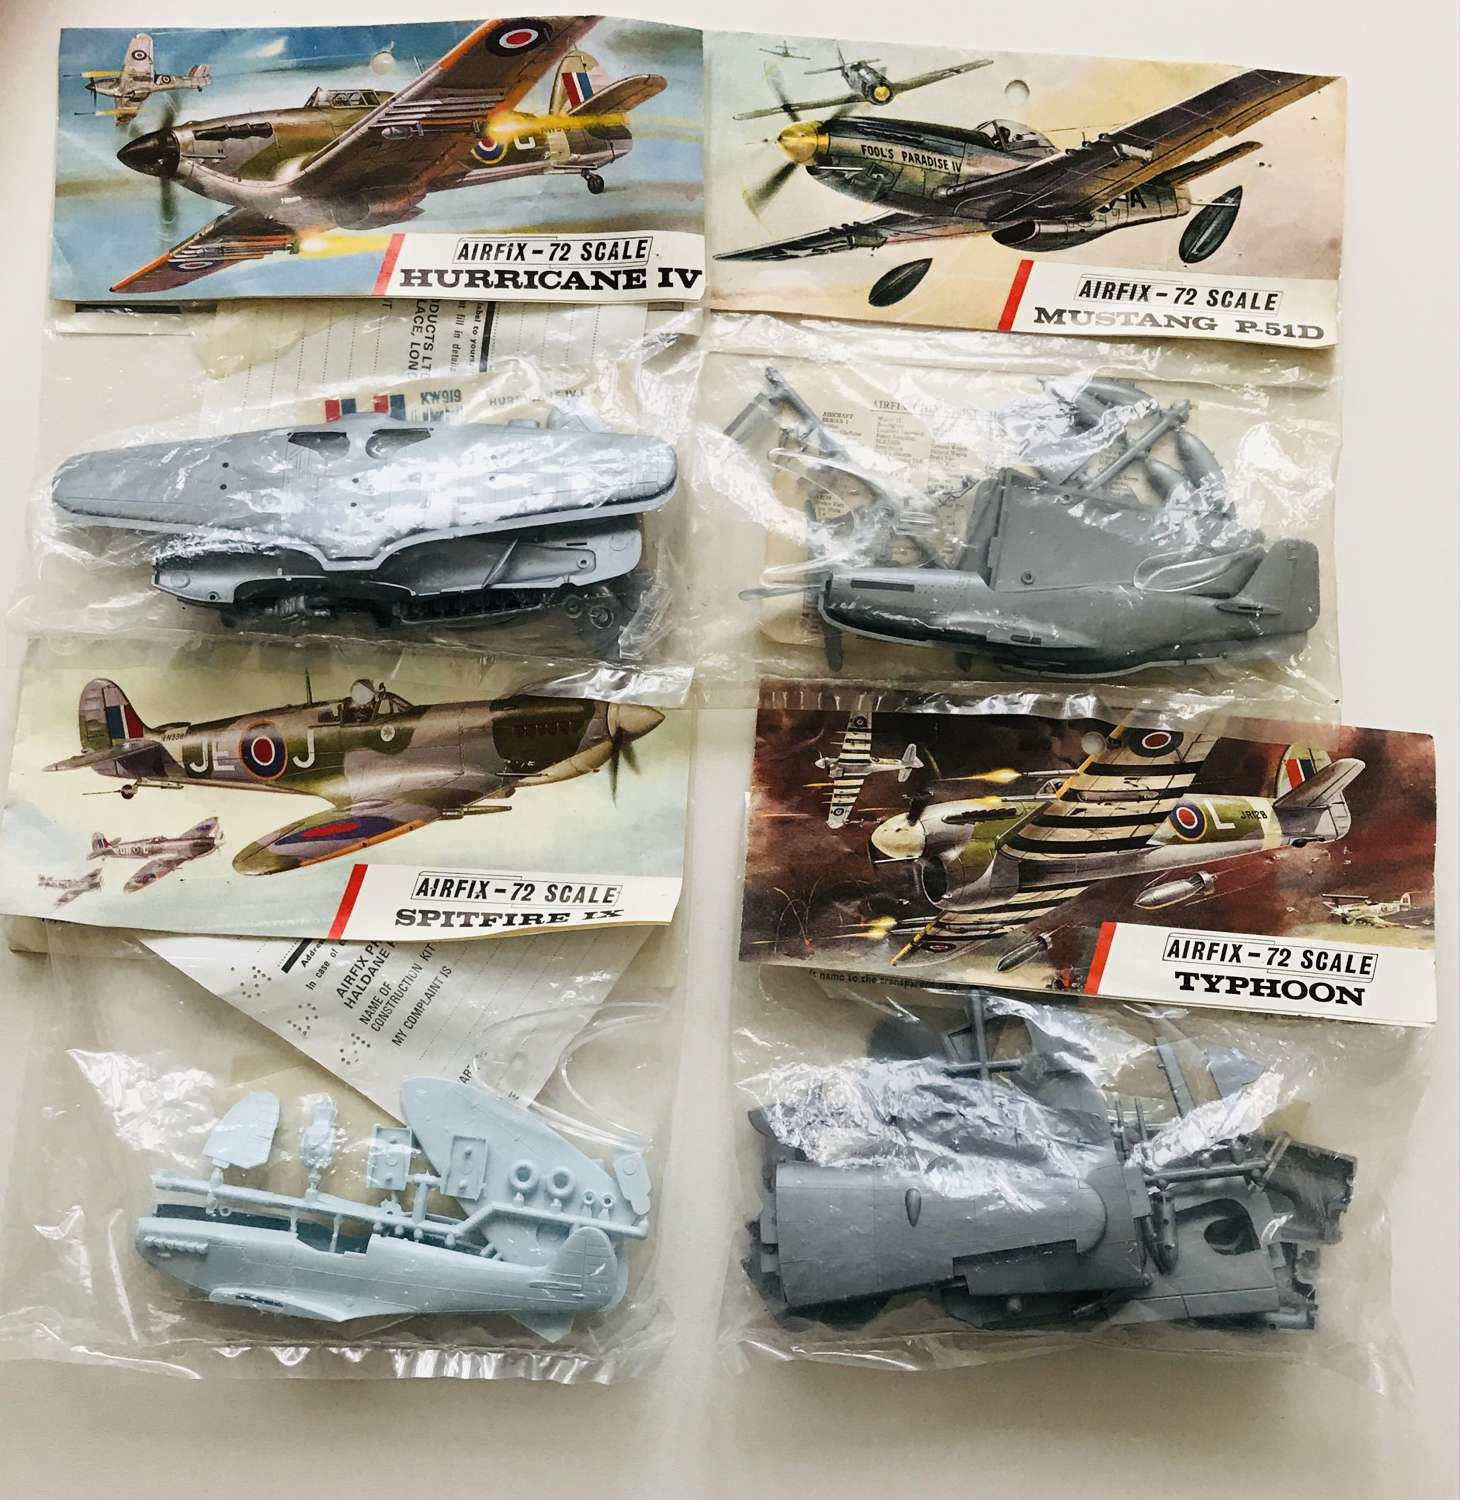 Four airfix models dating from the 1960s